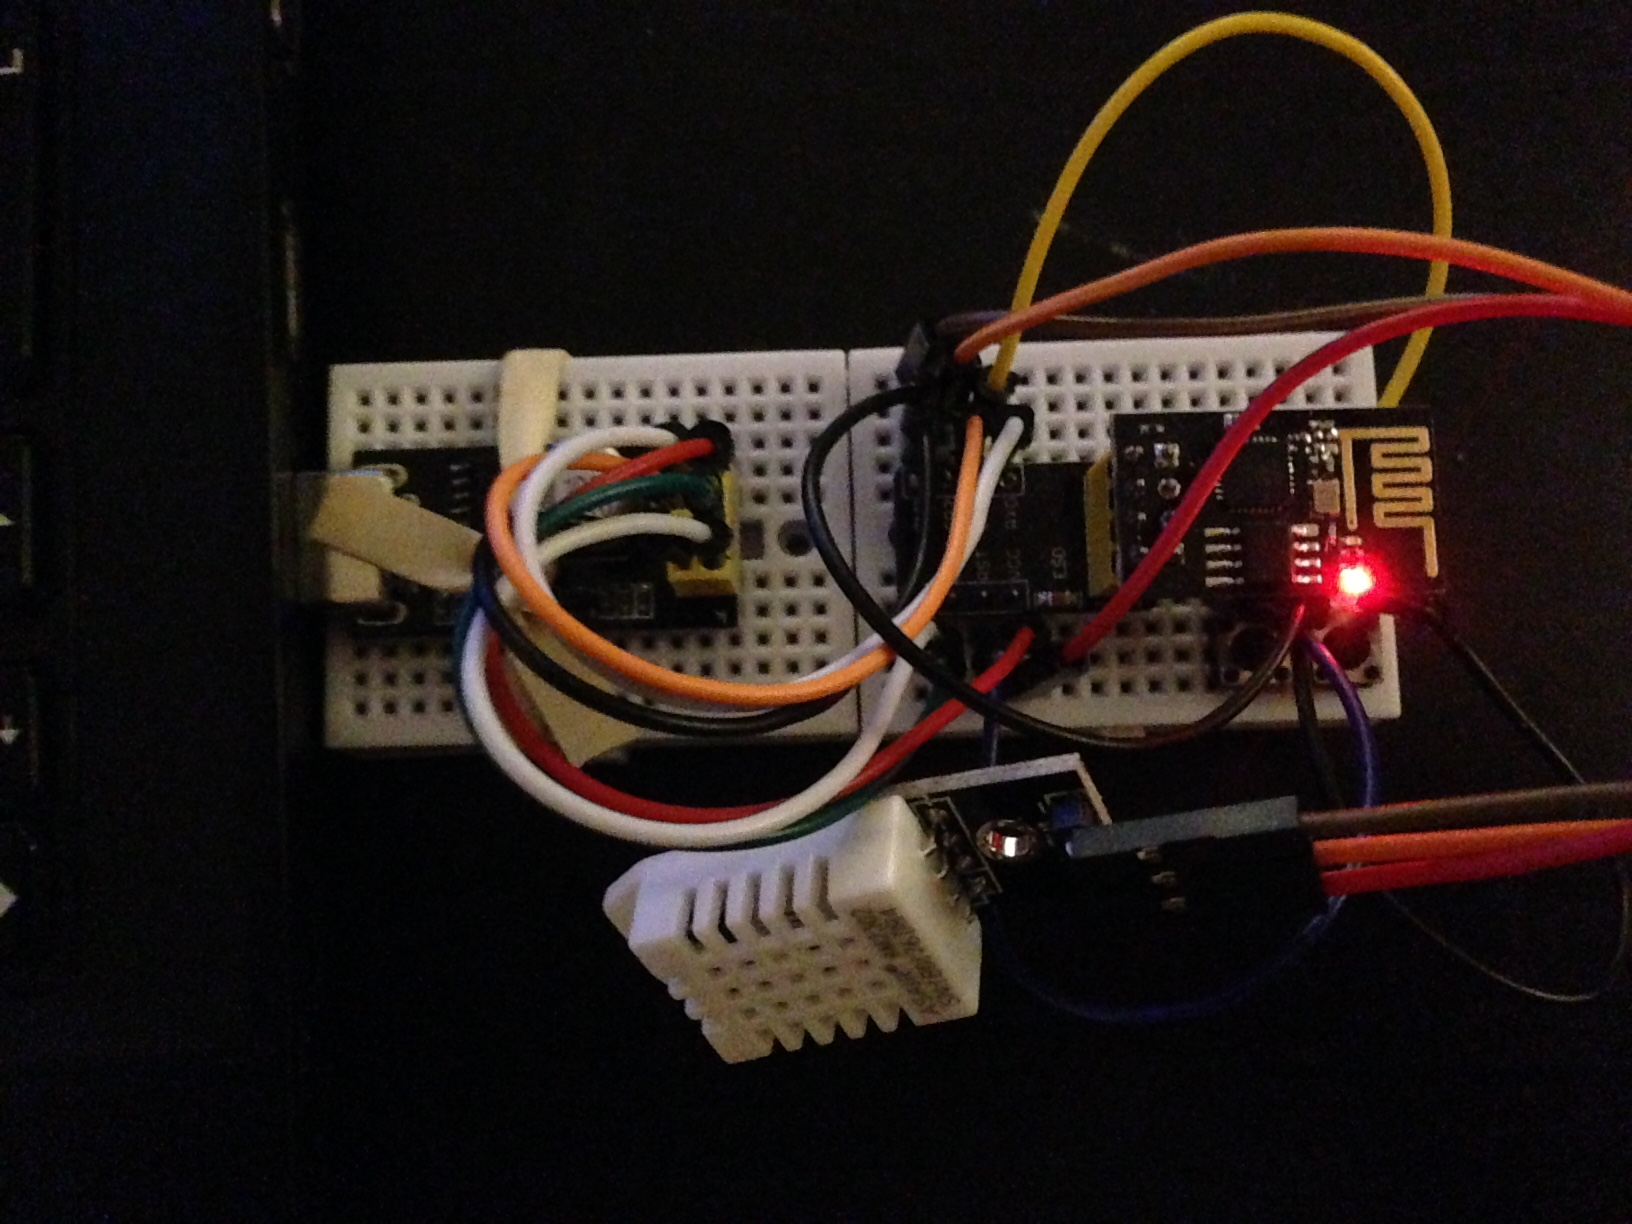 Temperature & Humidity Monitoring Using the ESP-01 & DHT and the AskSensors Cloud